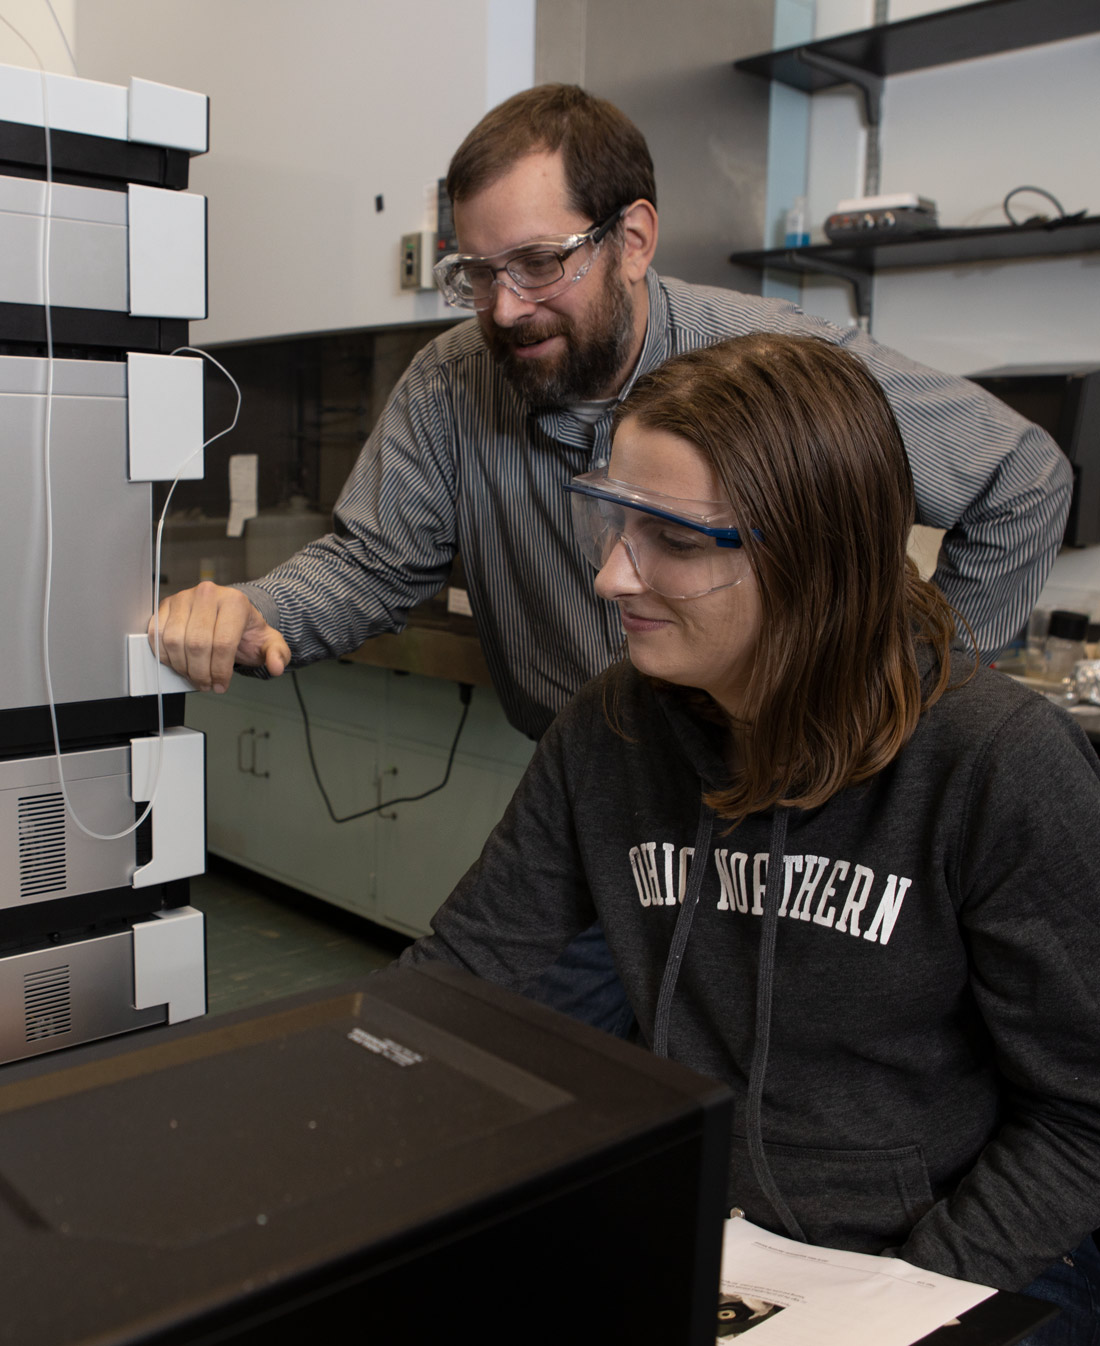 Christopher Spiese associate professor of chemistry works with chemistry students at Ohio Northern University.